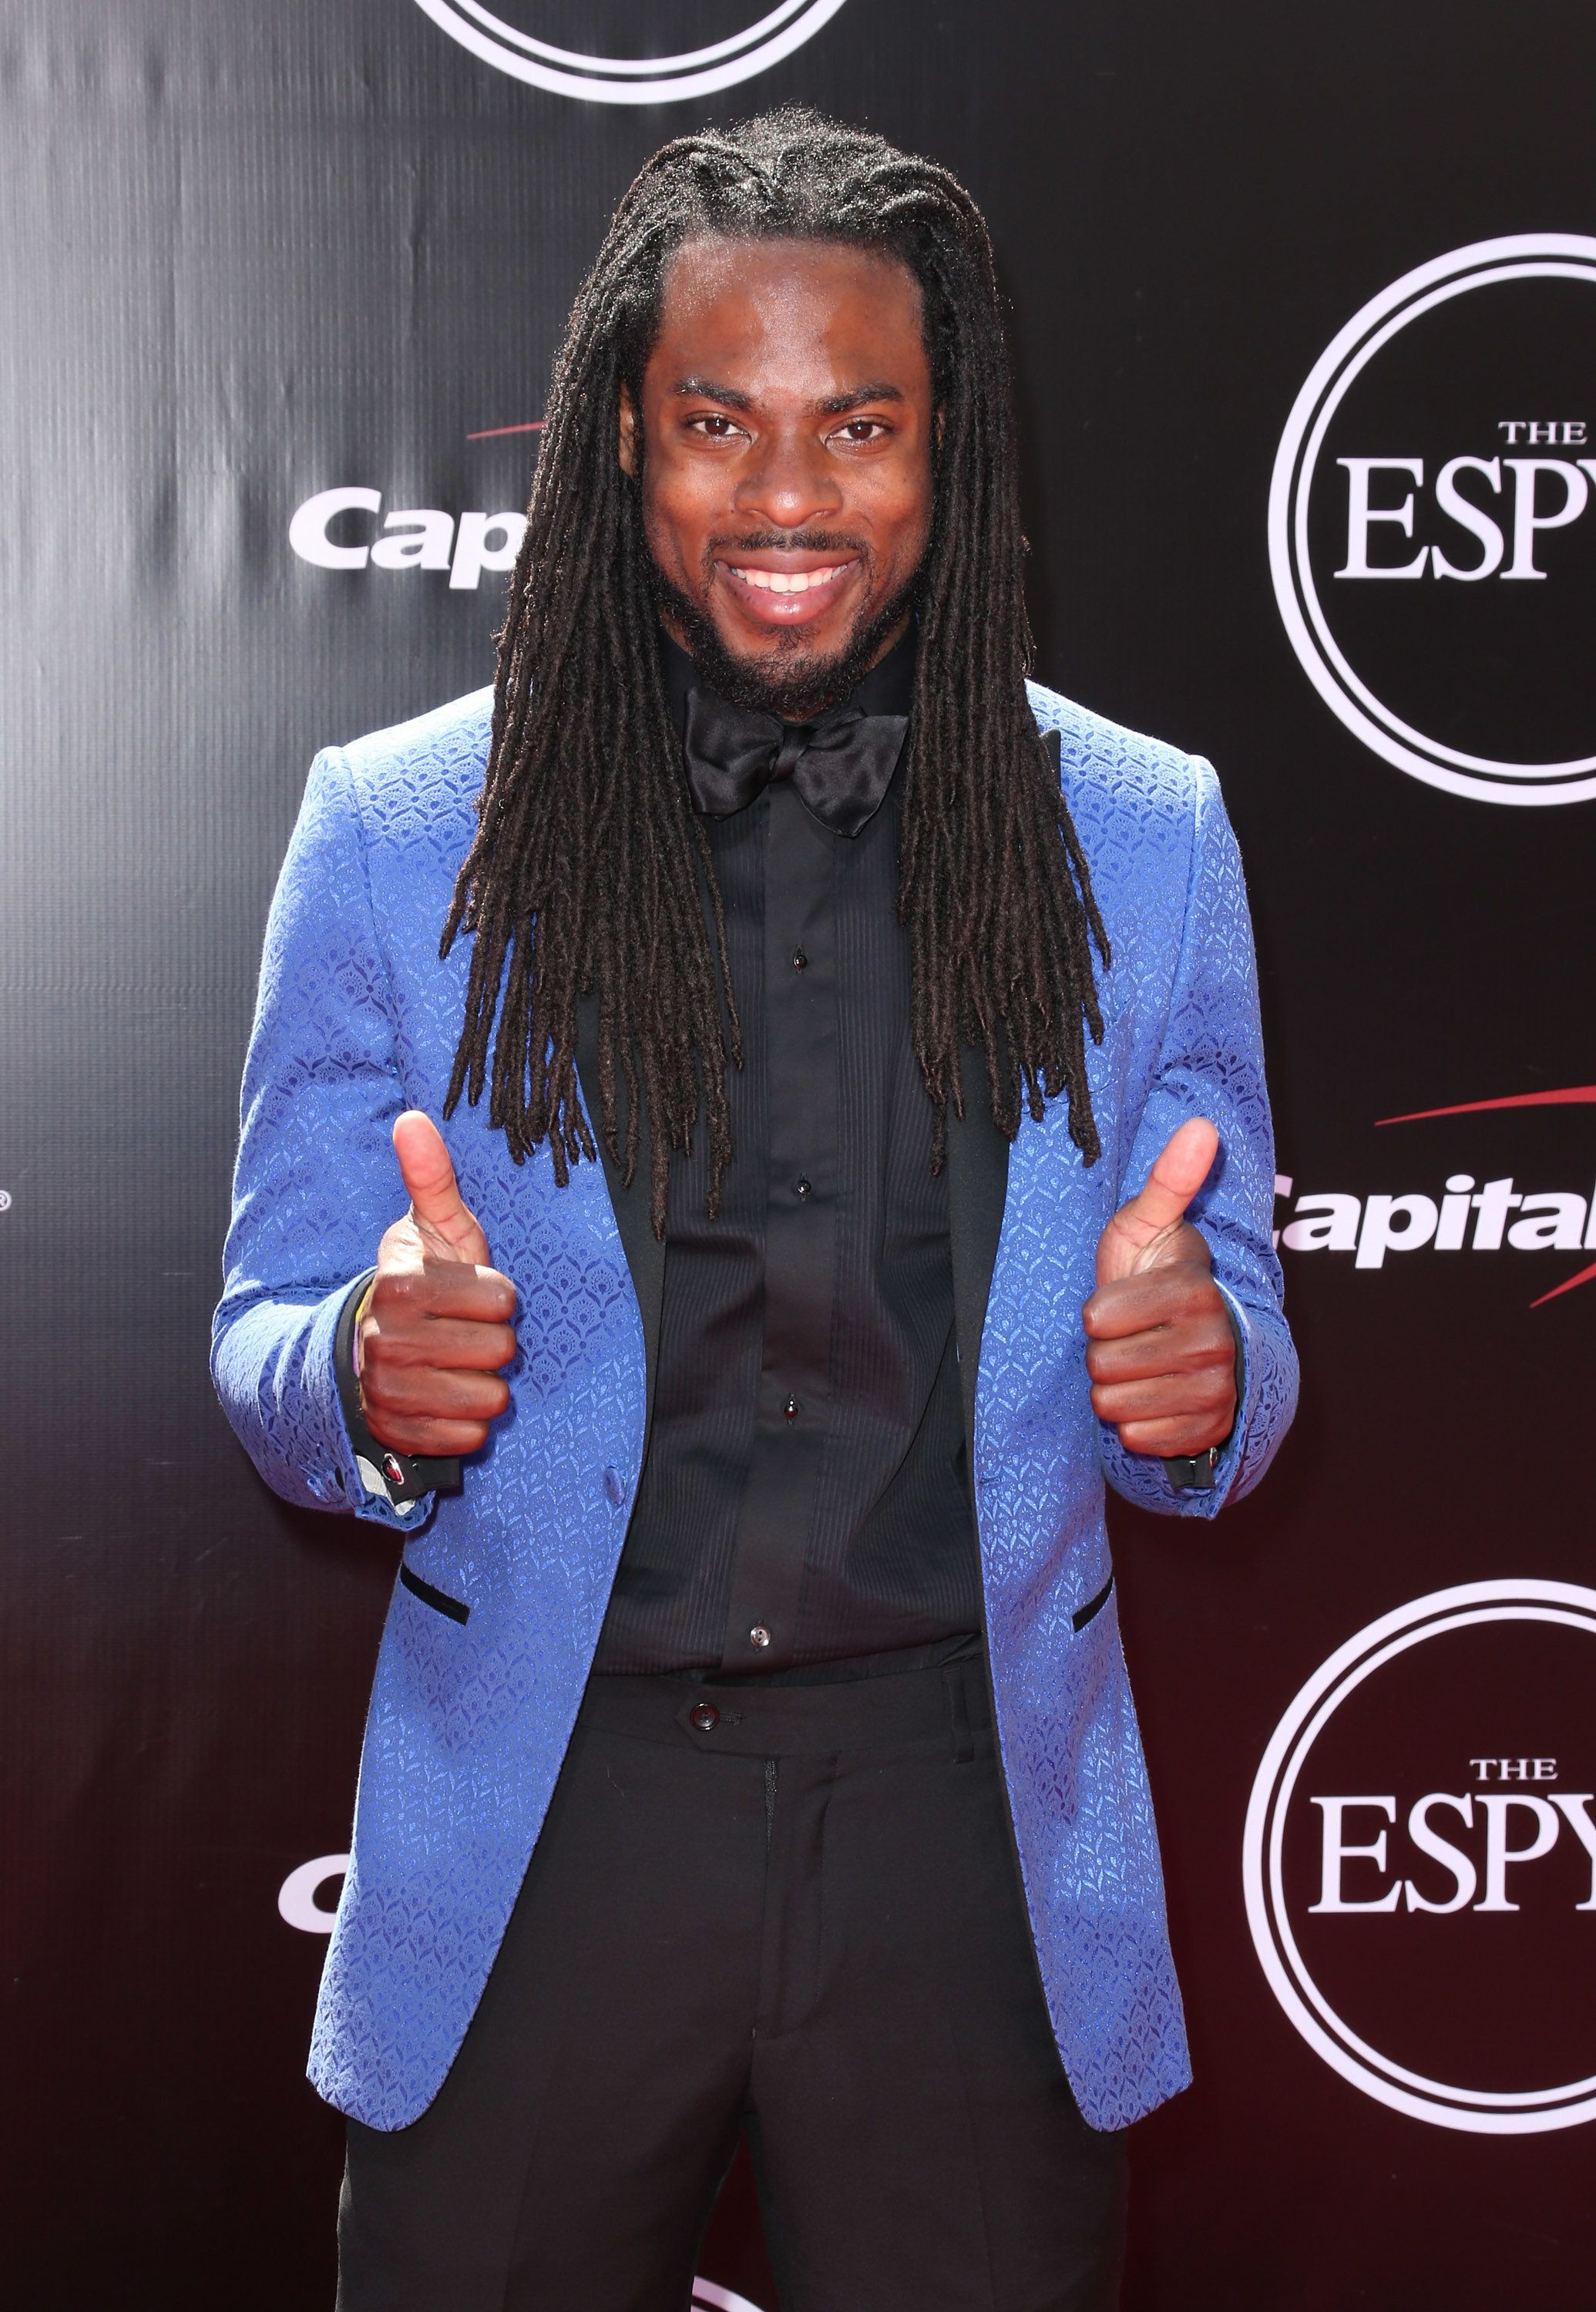 LOS ANGELES, CA - JULY 13:  Richard Sherman attends The 2016 ESPYS at Microsoft Theater on July 13, 2016 in Los Angeles, California.  (Photo by Todd Williamson/Getty Images)